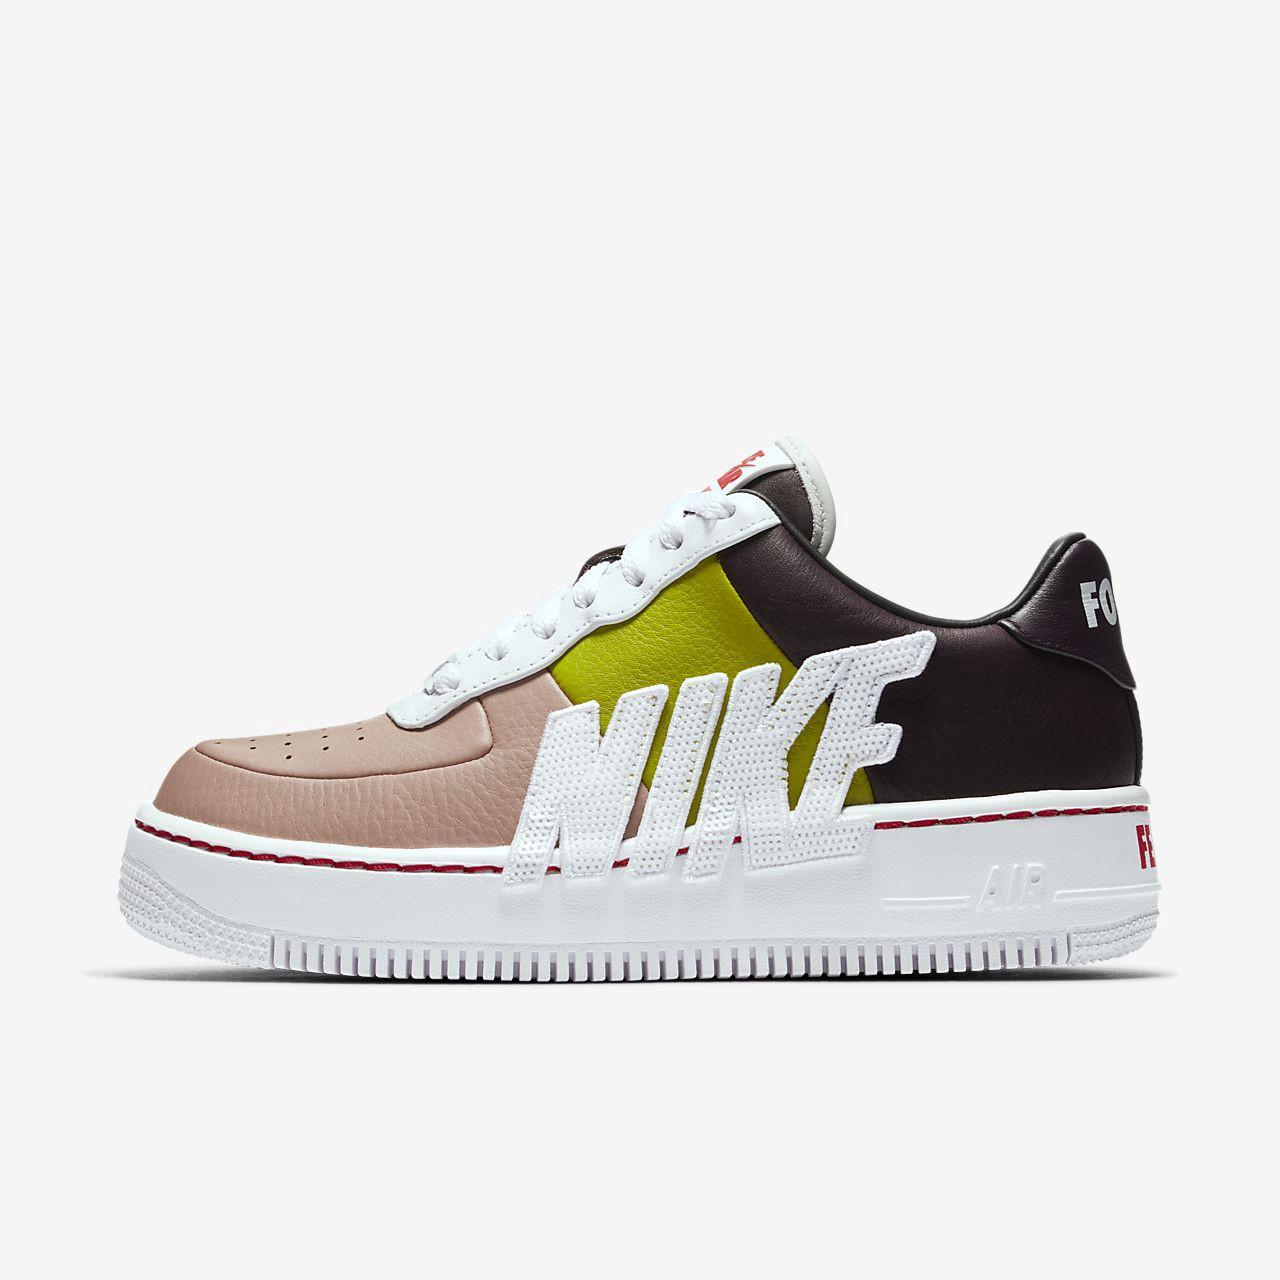 59d5ddb547 Nike Air Force 1 Upstep Lx Shoe In Port Wine/ White/ Cactus | ModeSens